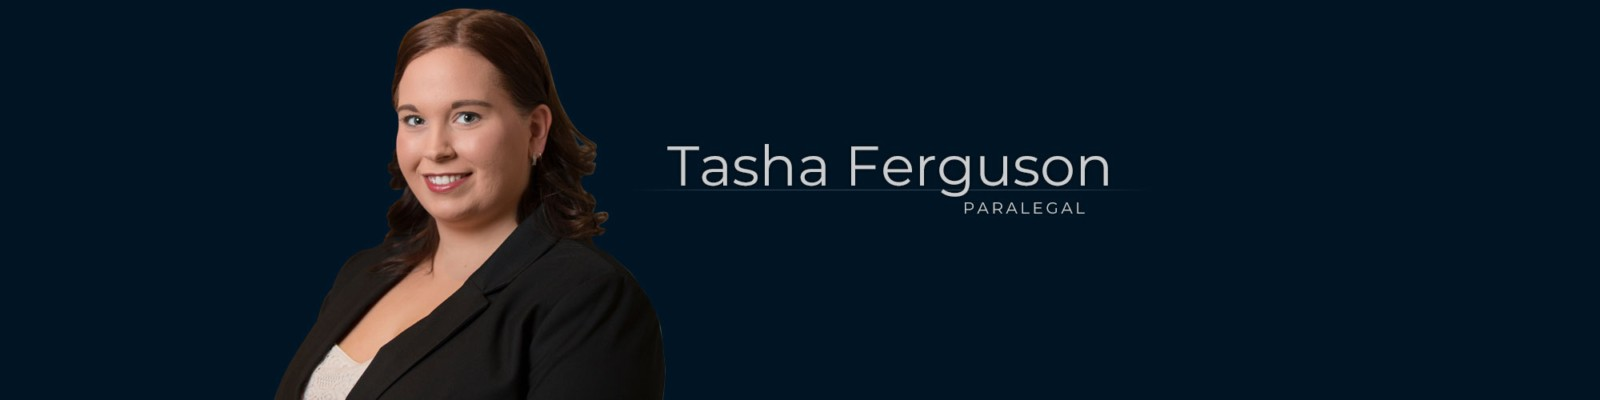 Tasha Ferguson – Paralegal at Dominion GovLaw LLP